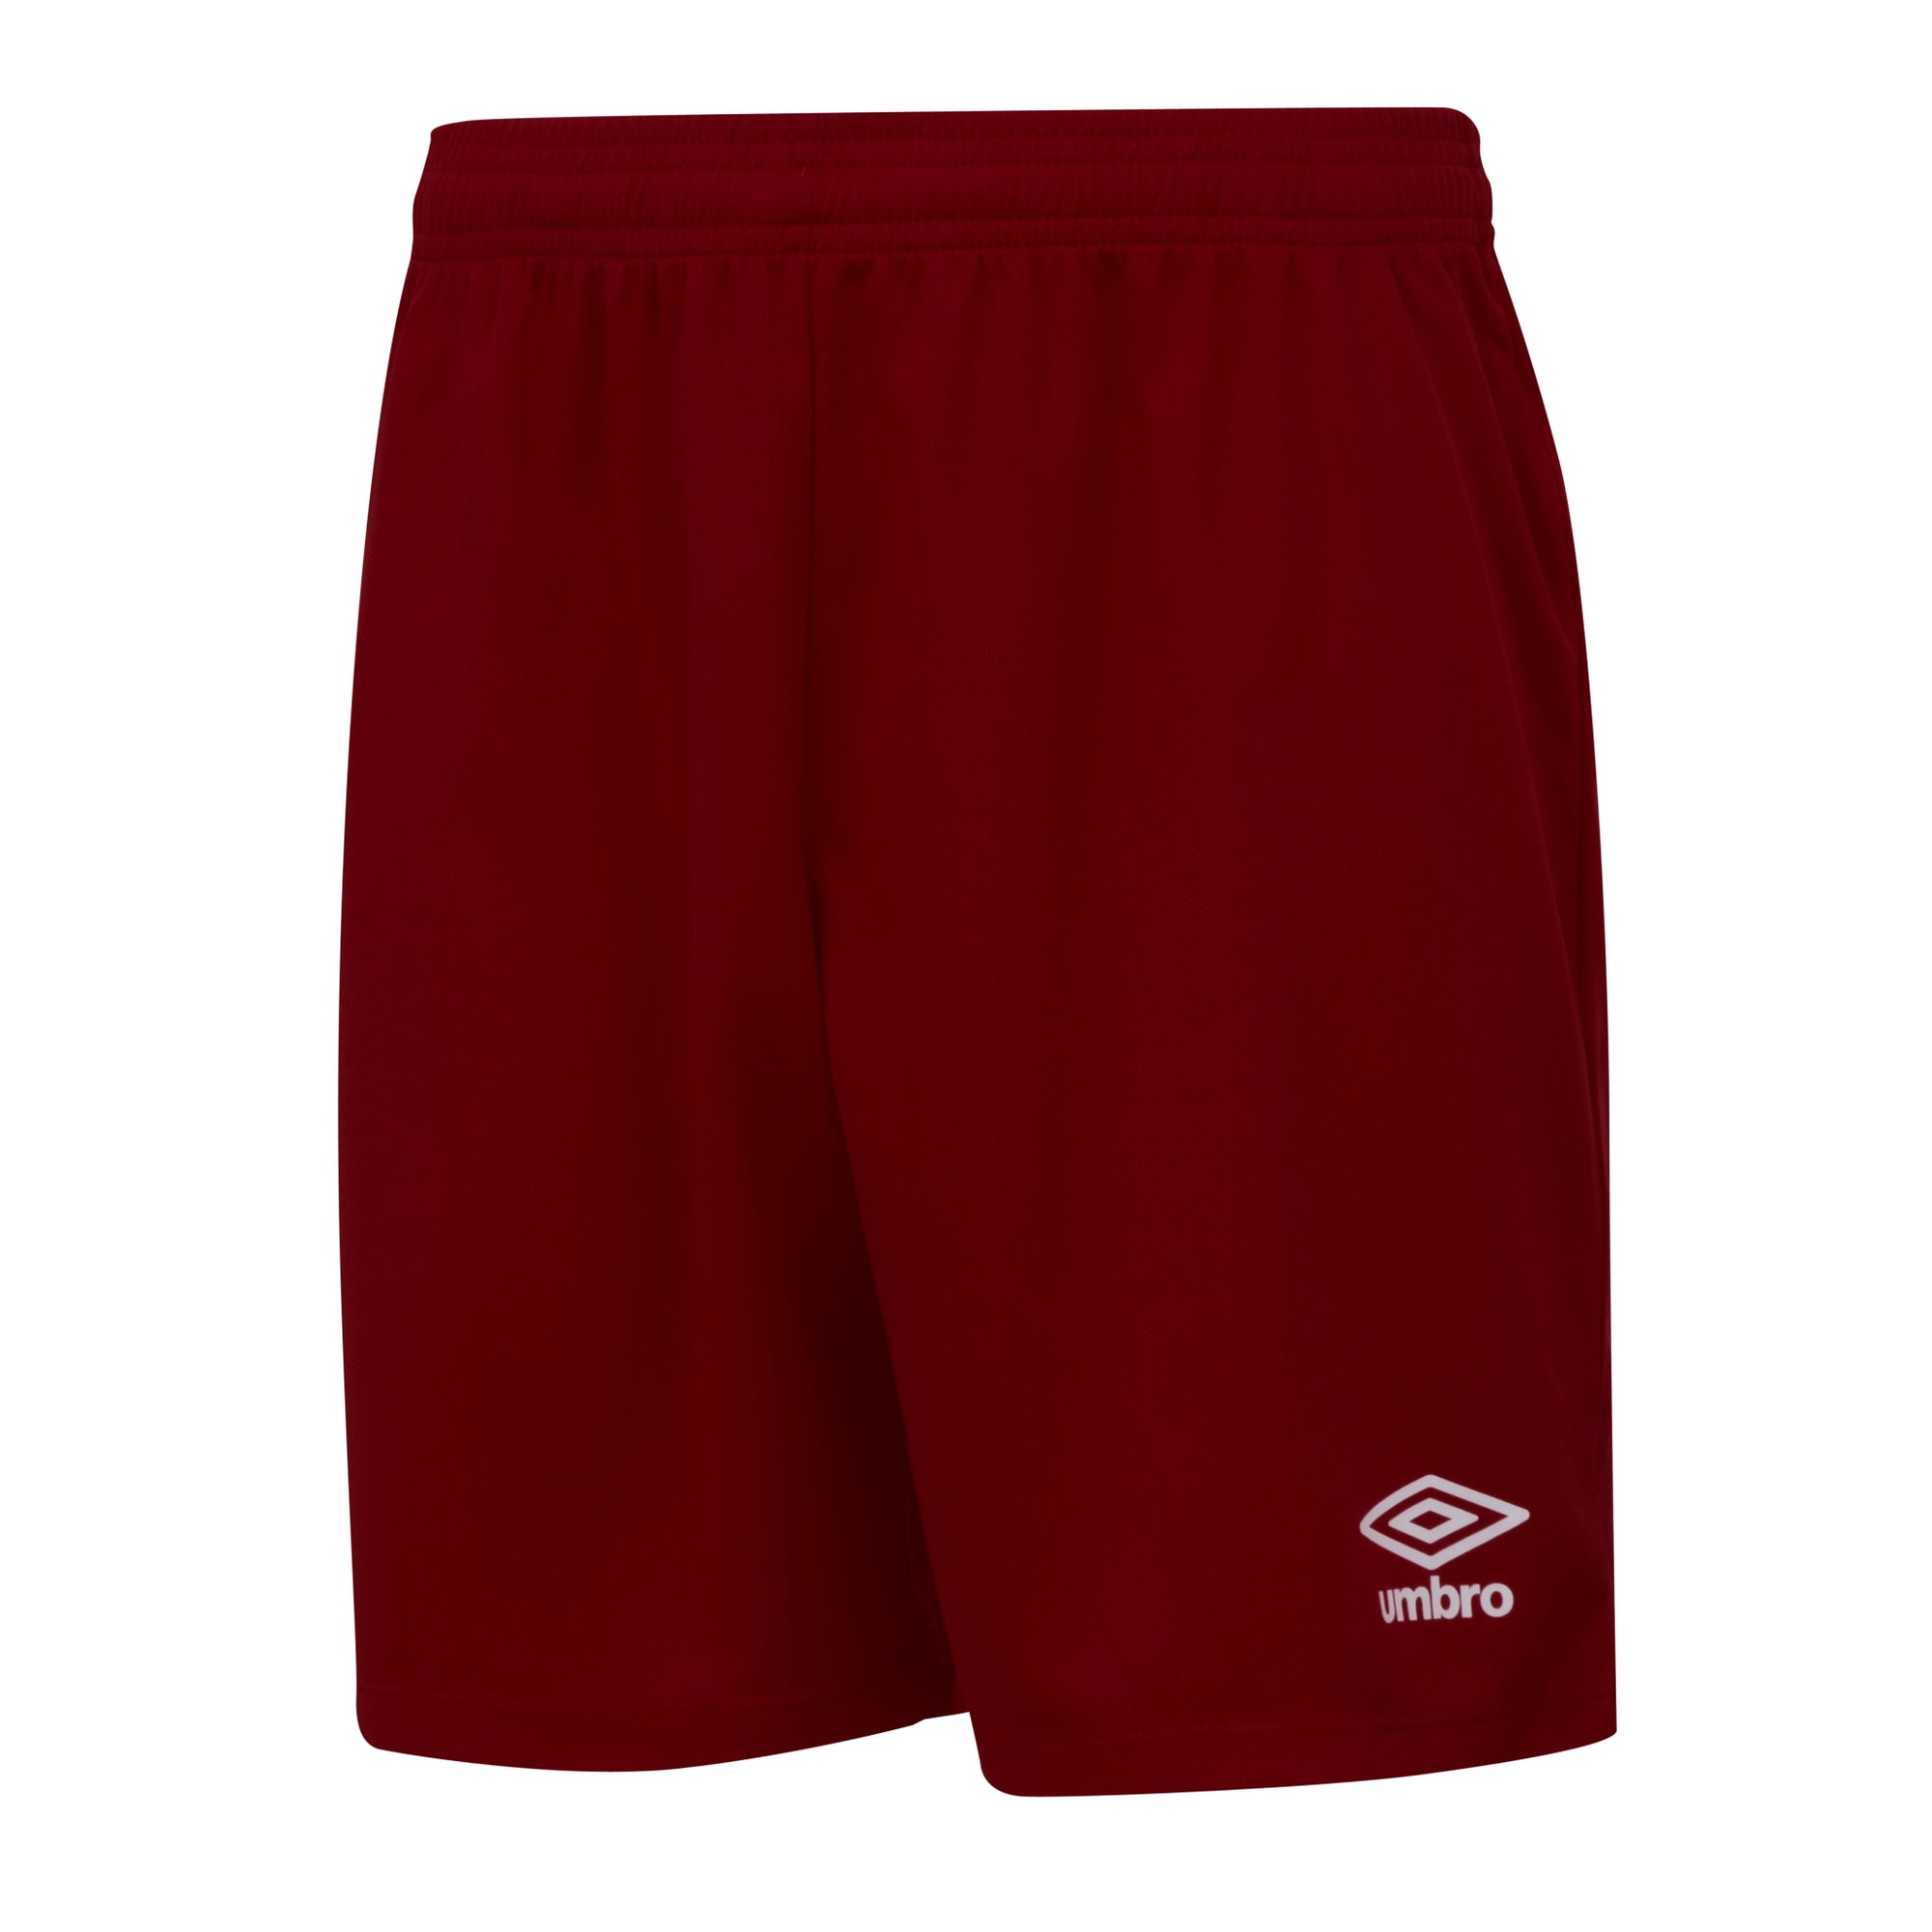 Umbro Club Short II - New Claret